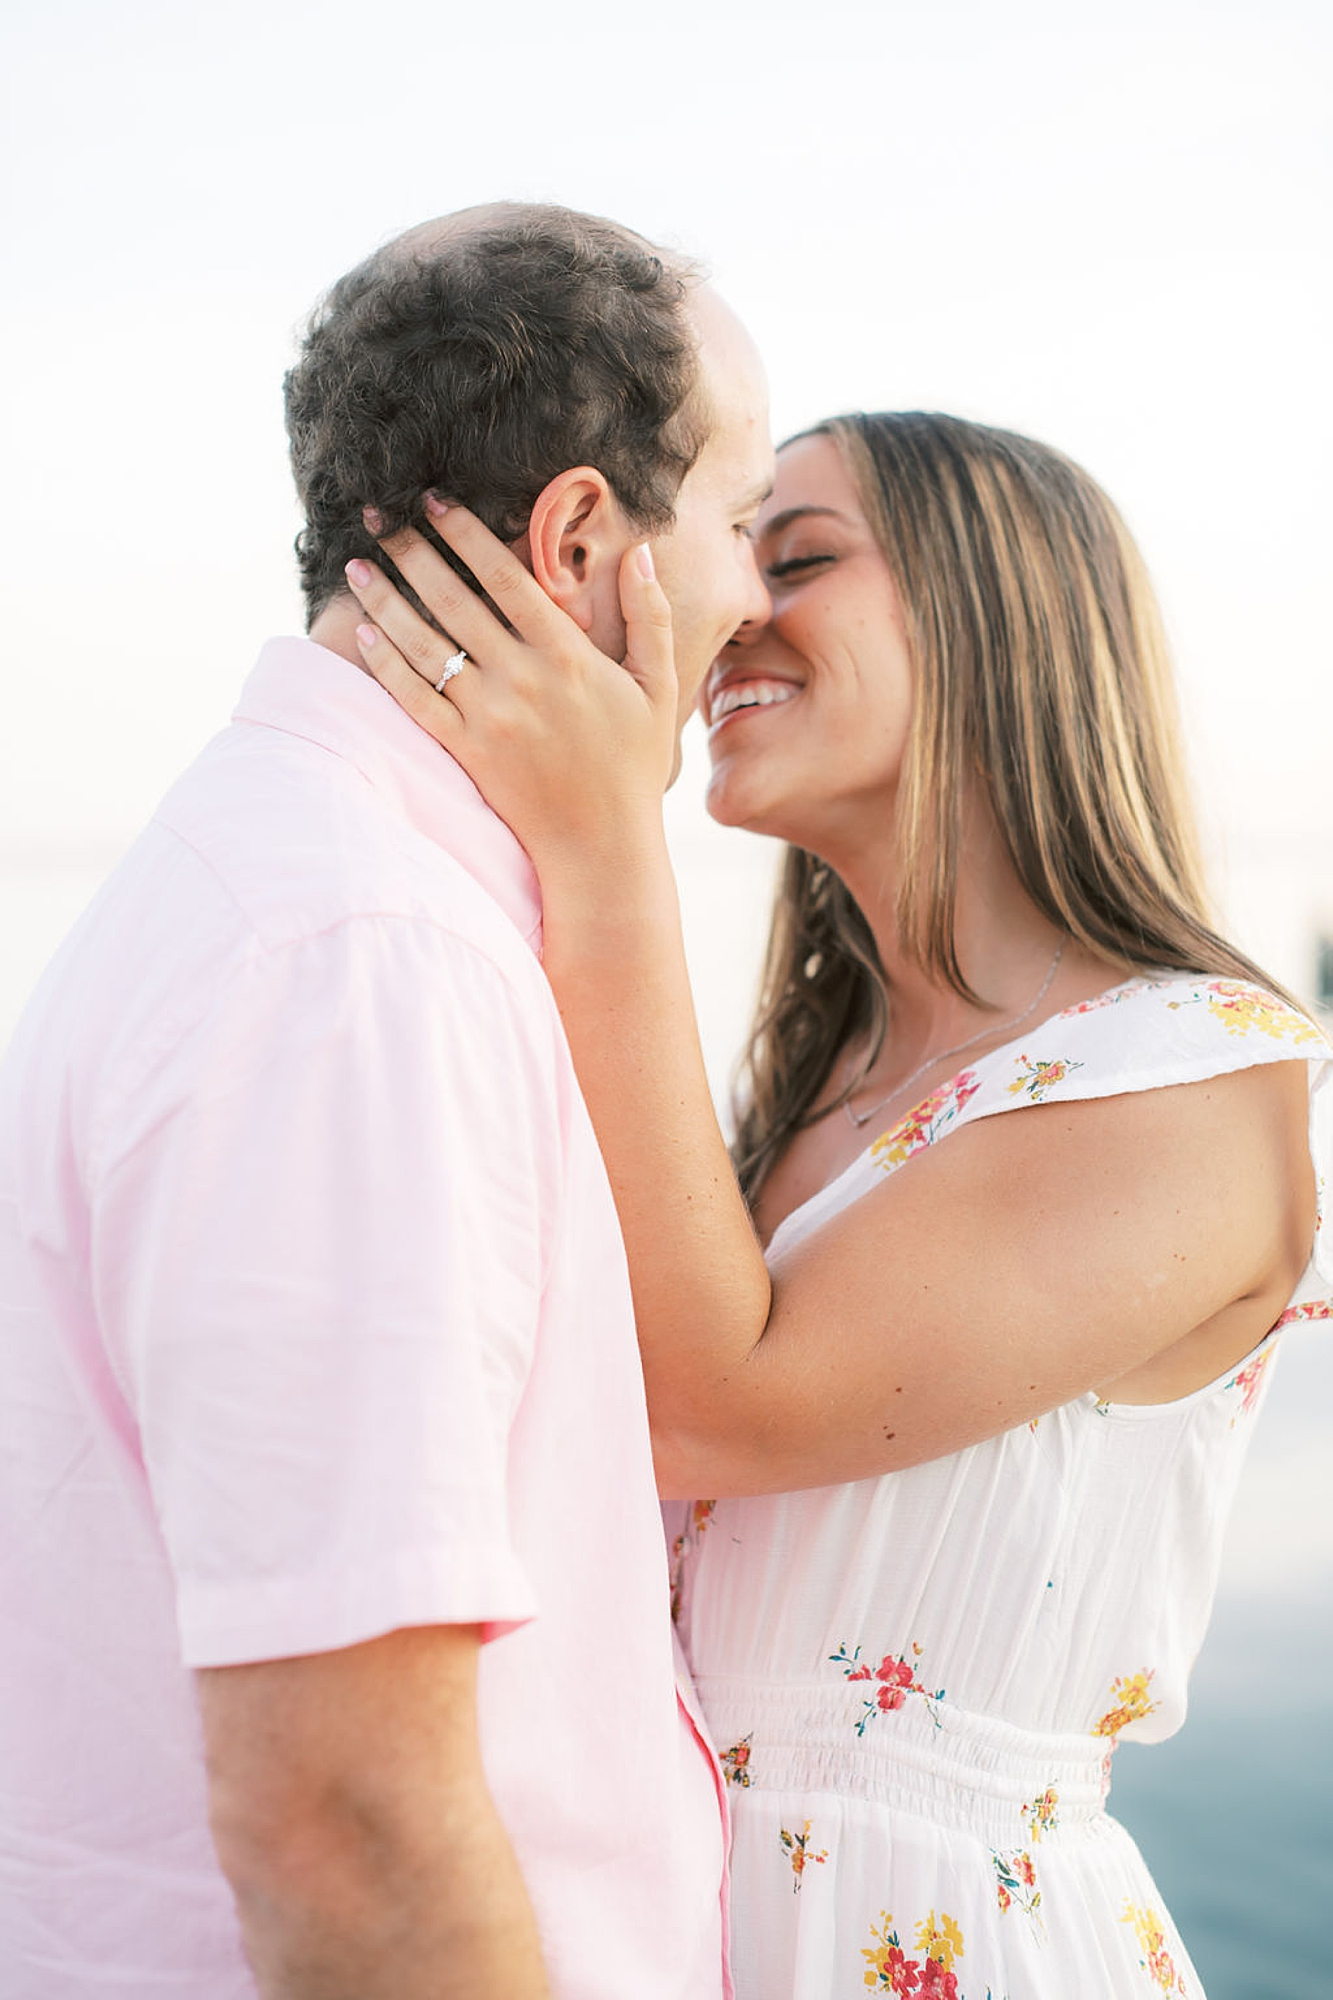 Organic and Romantic Engagement Photography in Ocean City NJ by Magdalena Studios 0019